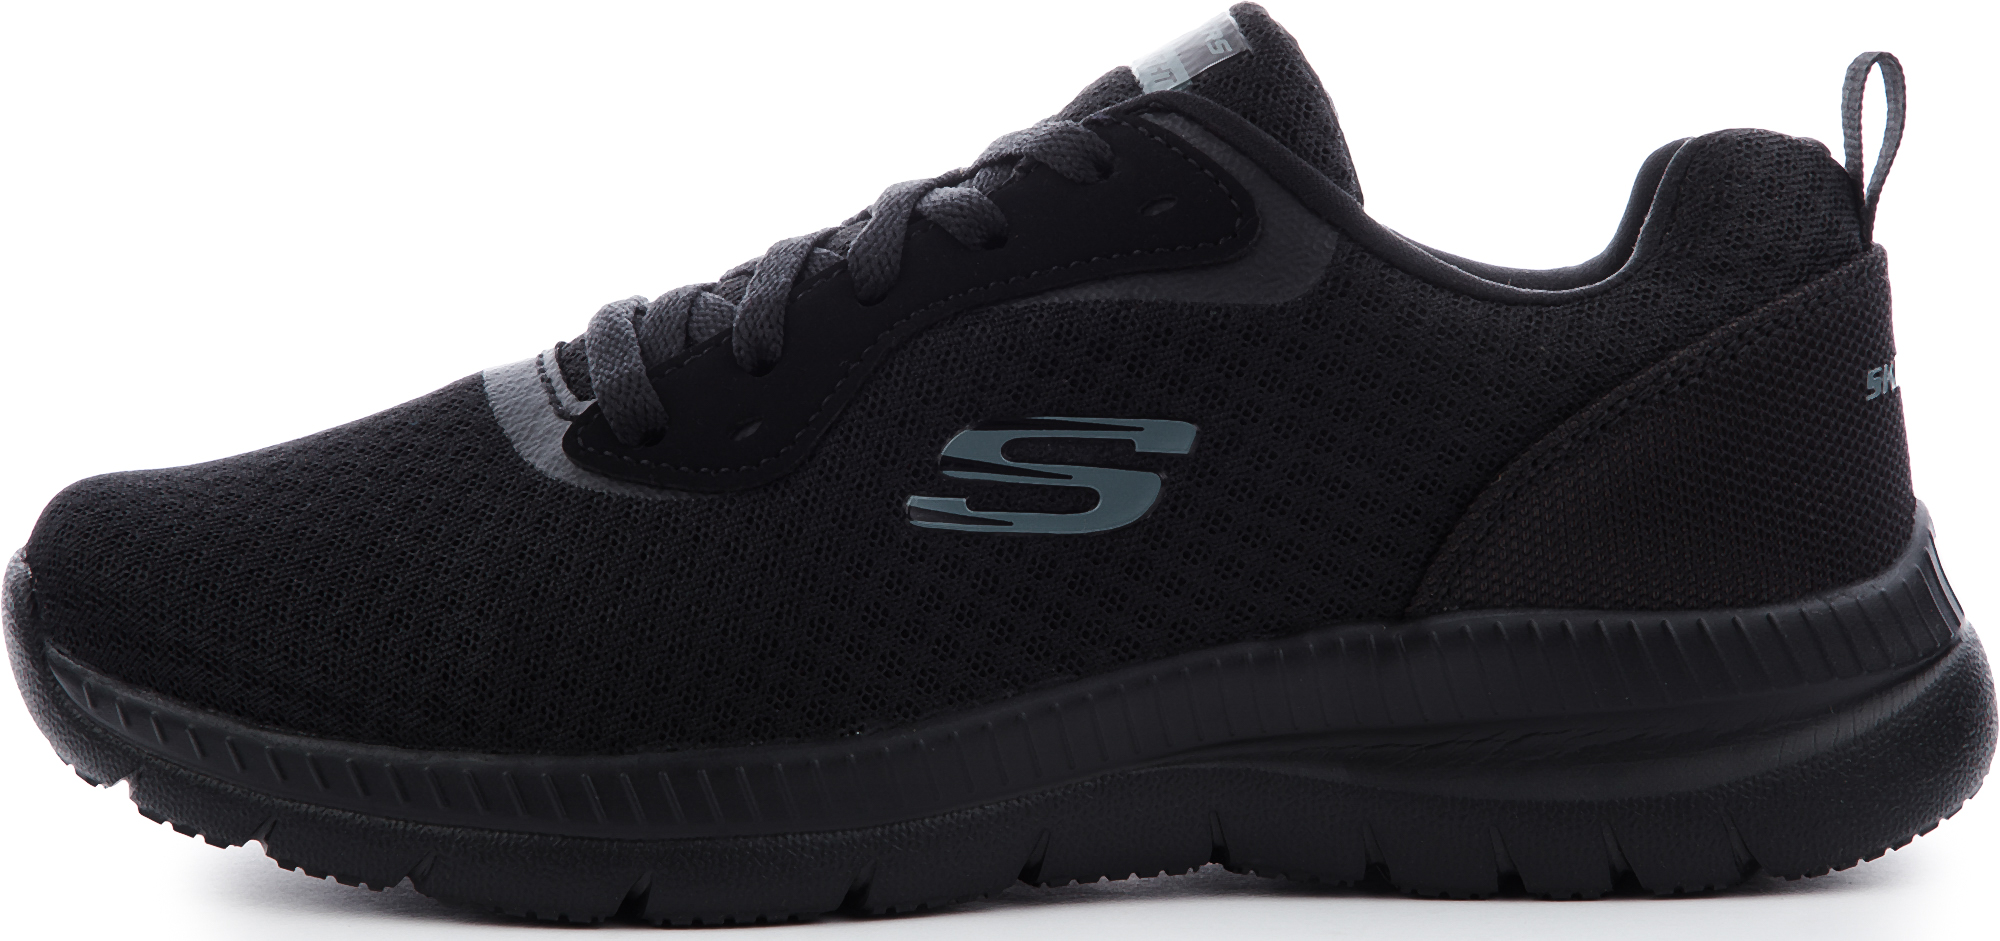 Skechers Кроссовки женские Skechers Bountiful, размер 40 skechers кроссовки женские skechers ultra flex first take размер 39